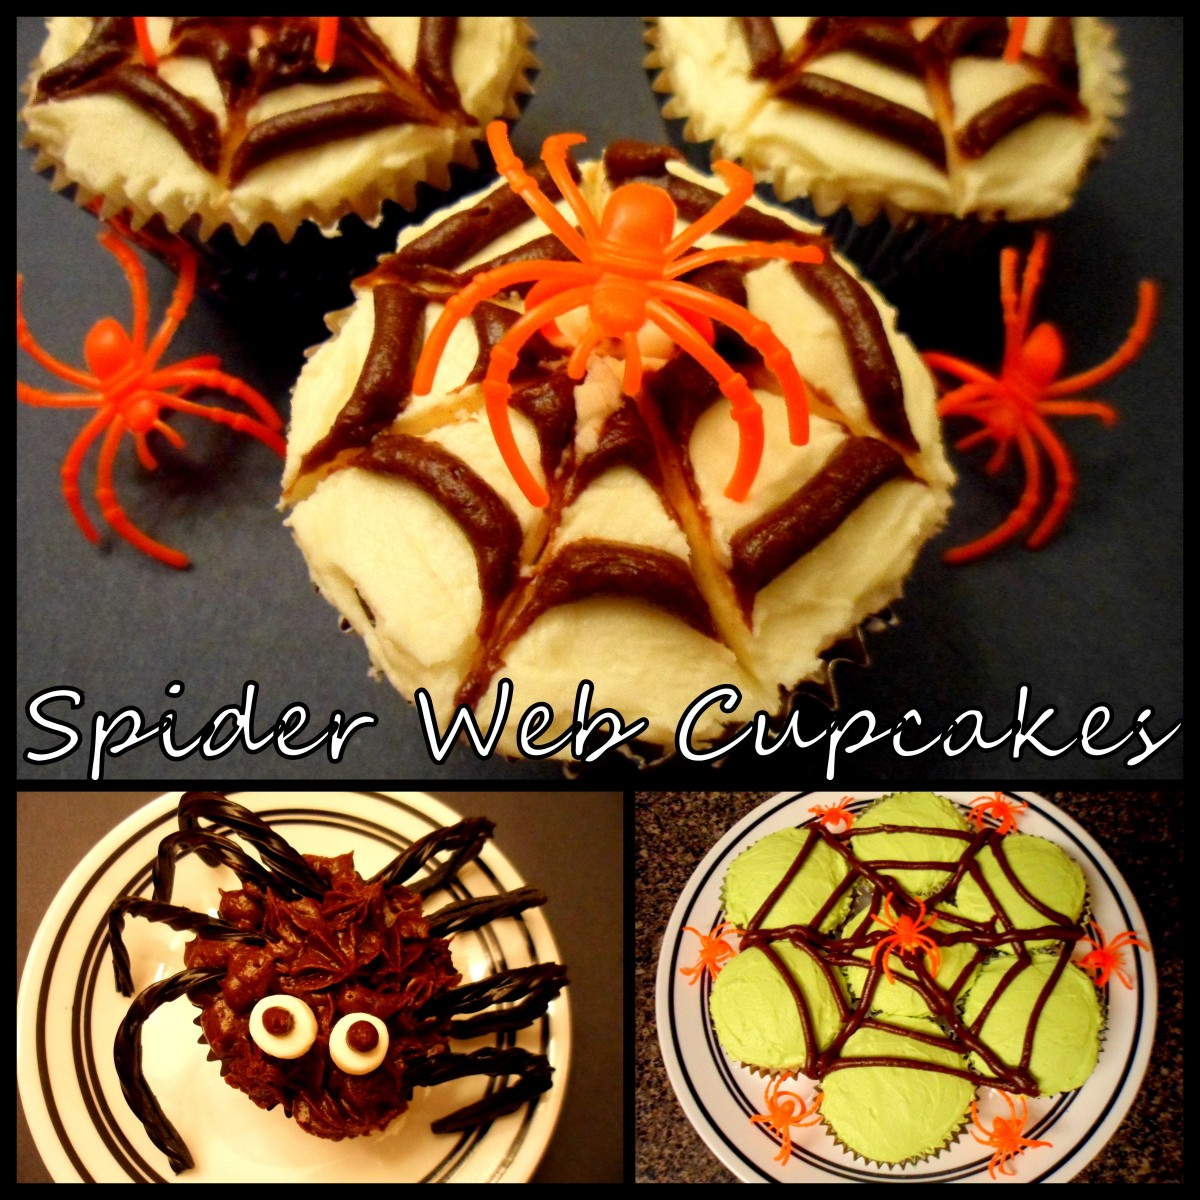 Try these fun and easy decorating ideas for your spider web cupcakes.